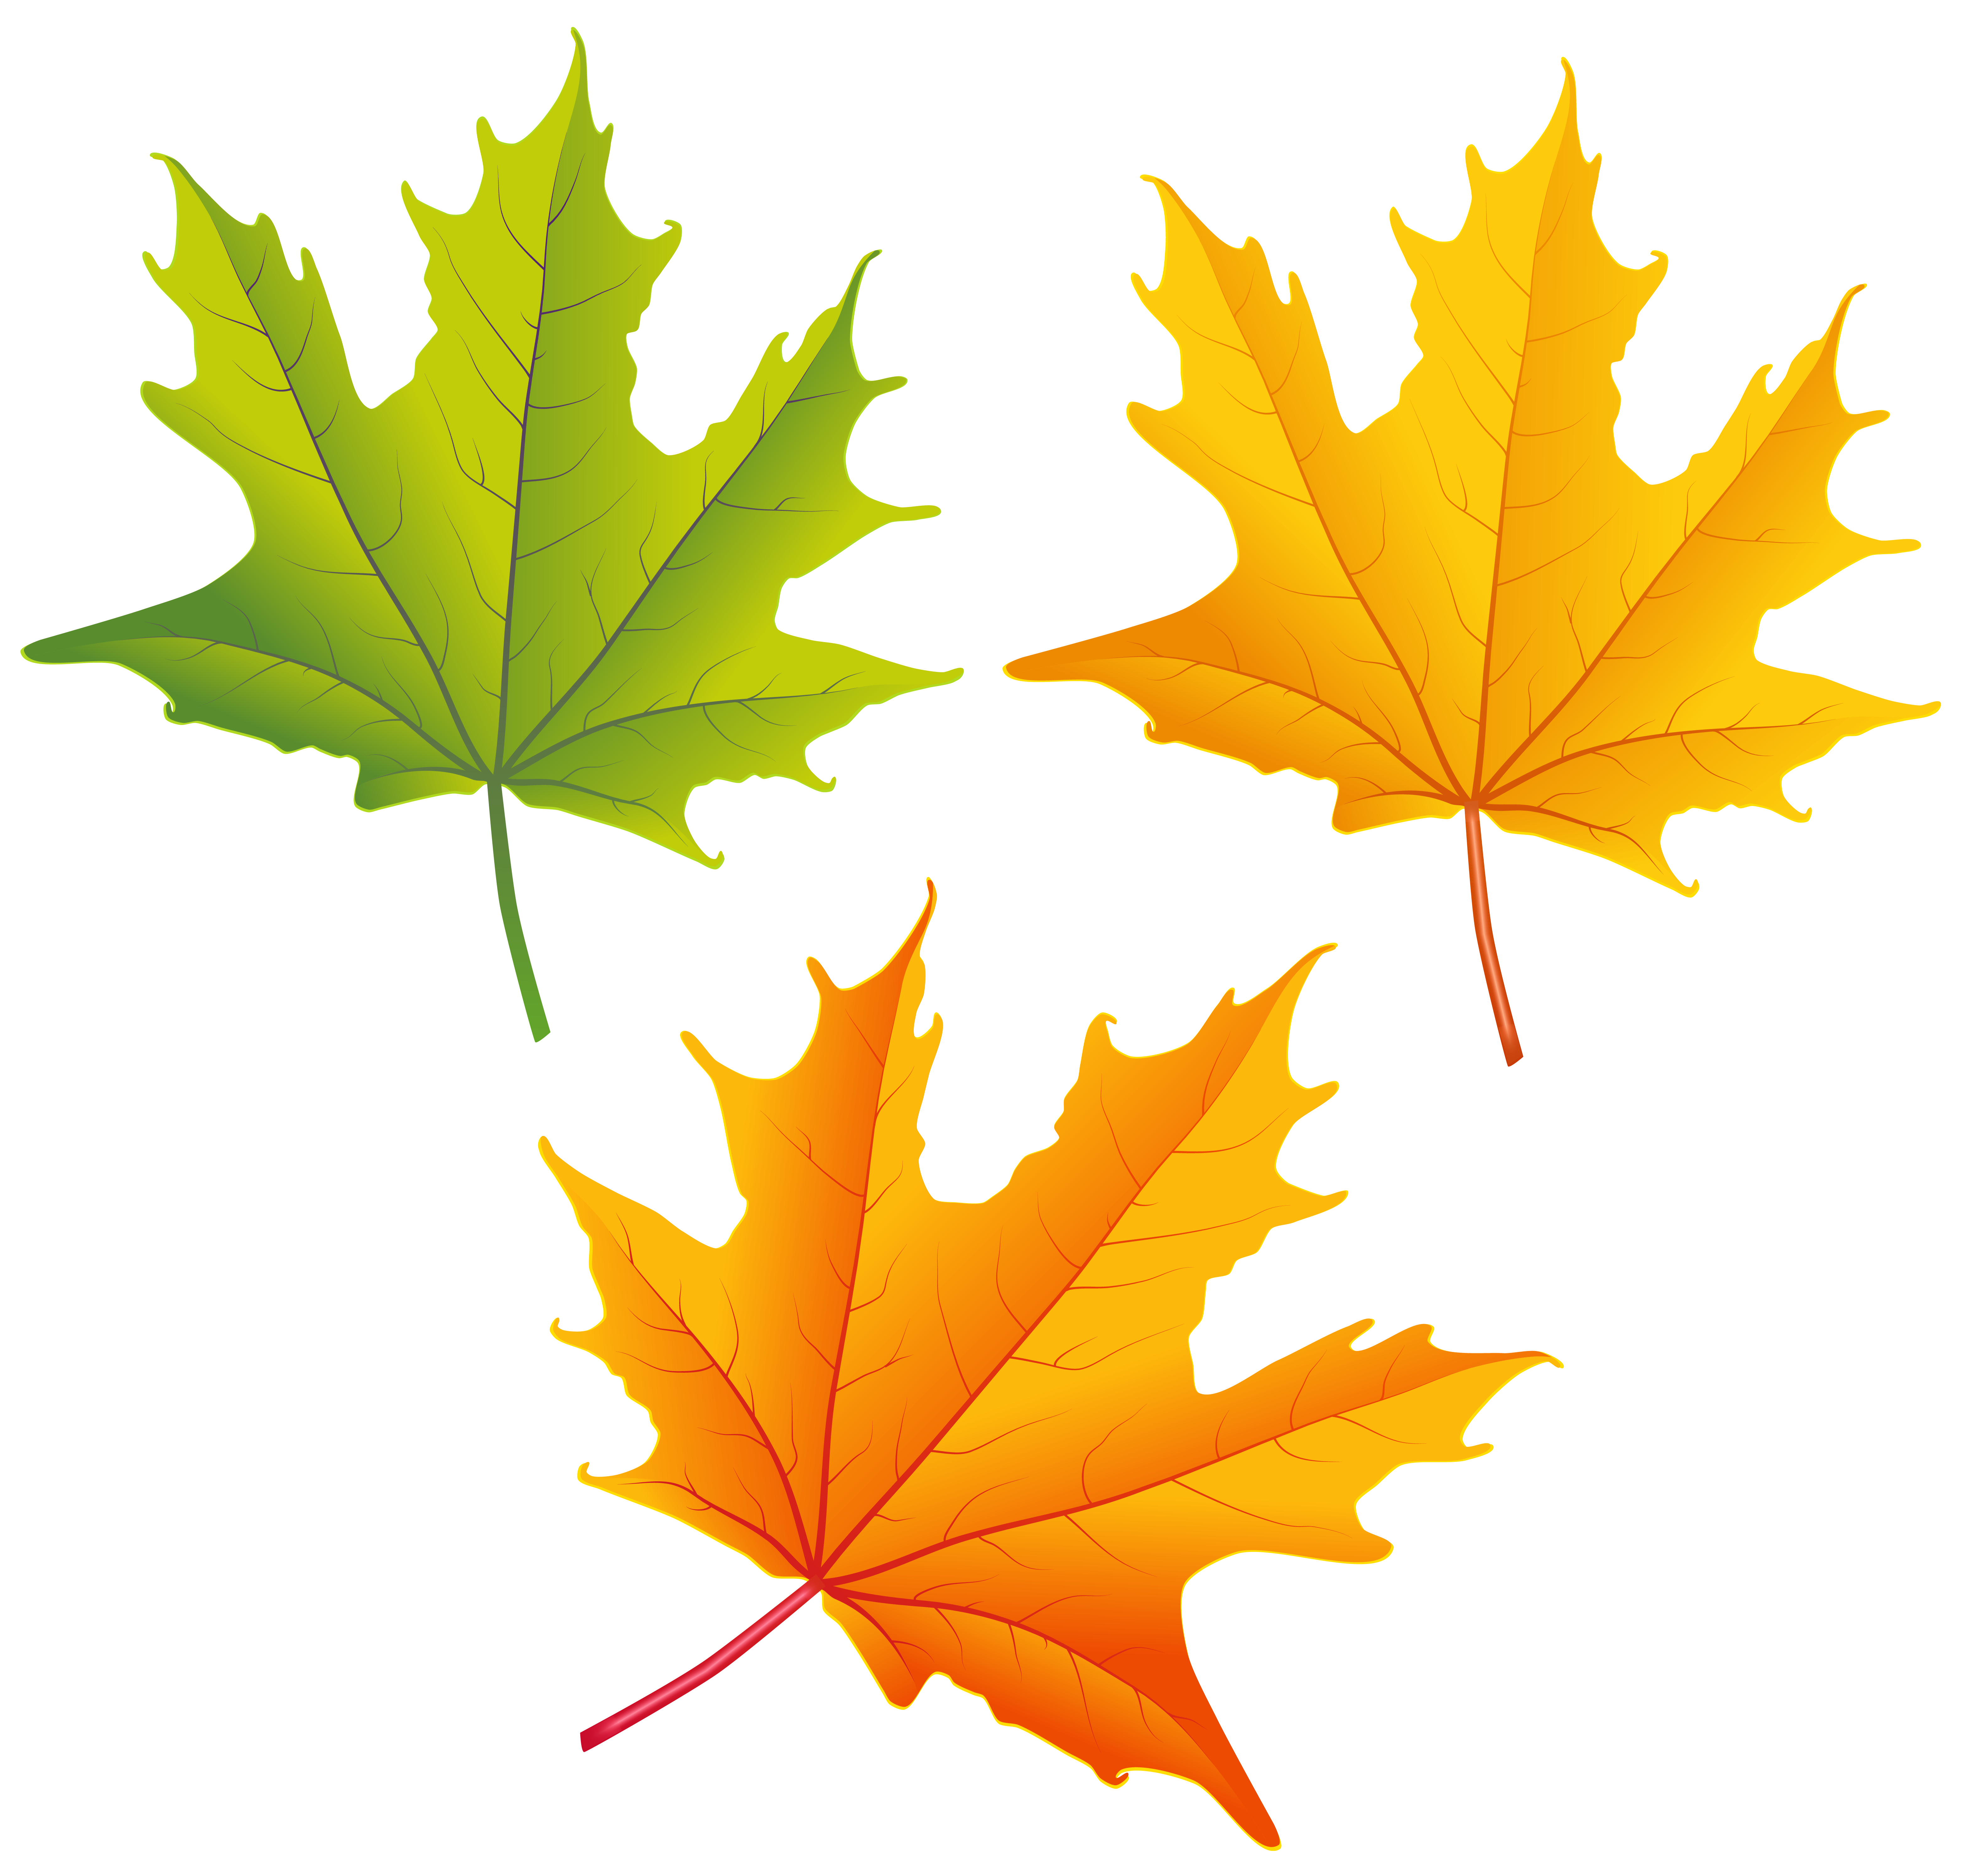 fall leaves clipart at getdrawings com free for personal use fall rh getdrawings com falling leaves clipart falling leaves clipart free